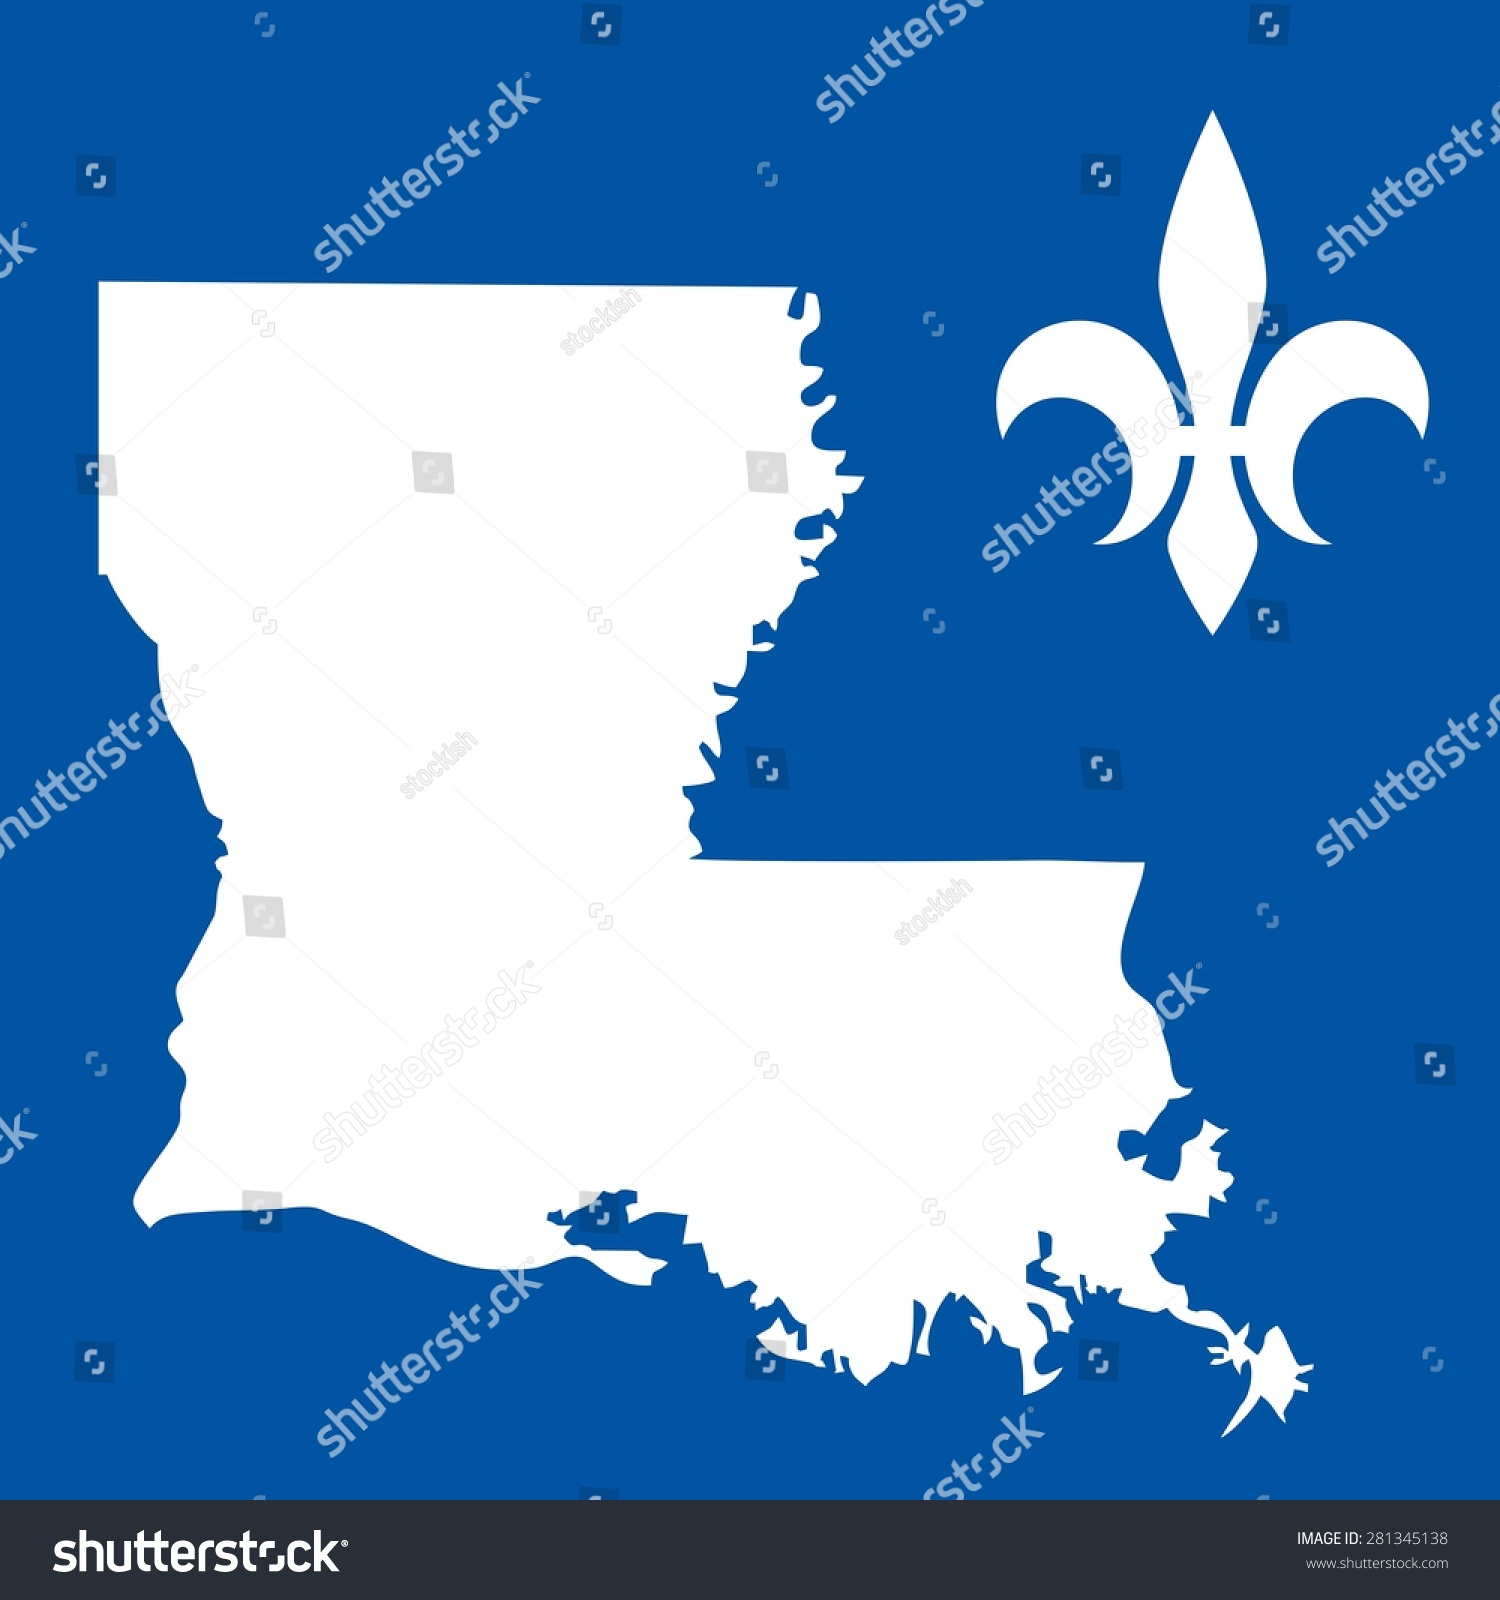 Louisiana Usa State Map Fleur De Stock Vector Shutterstock - Louisiana on usa map